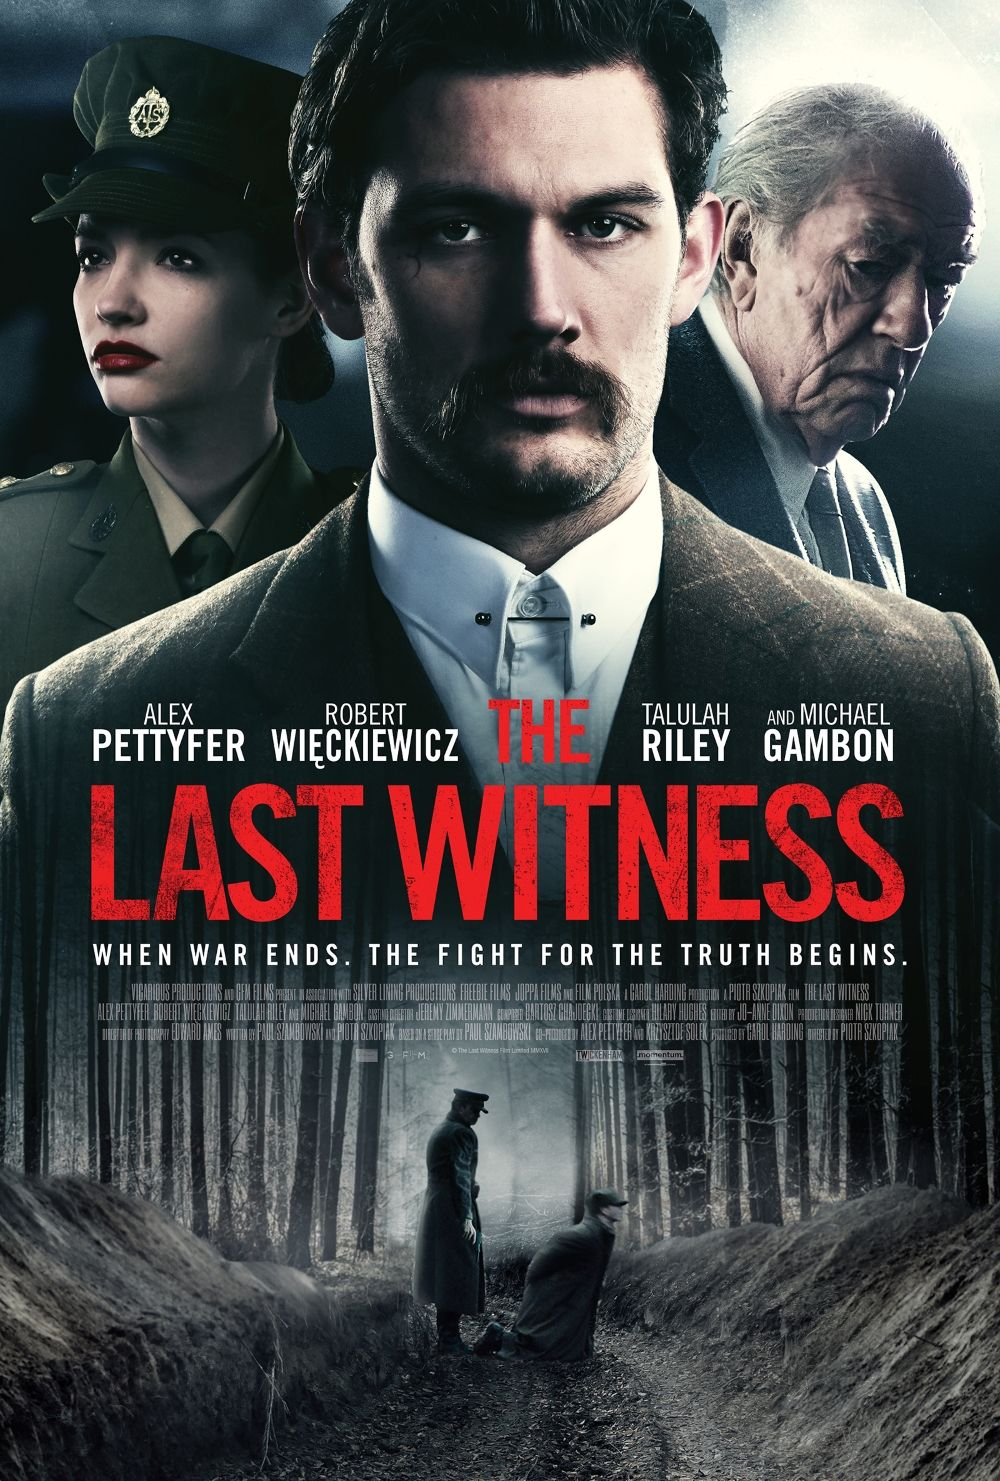 The Last Witness Free Movies Online Streaming Movies Online Download Movies